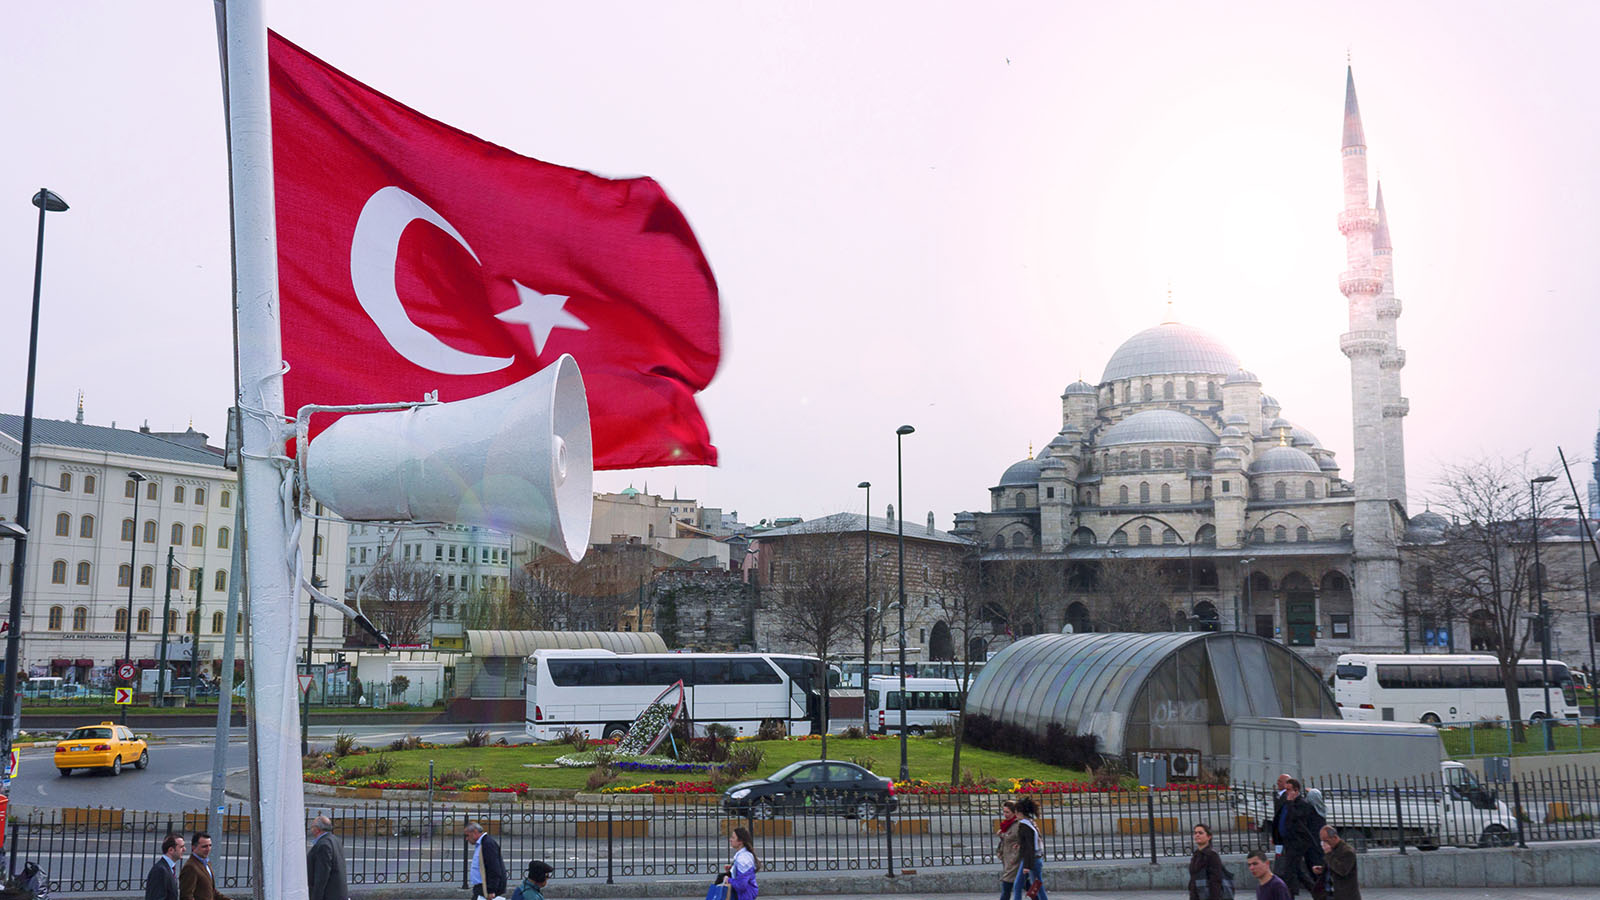 Turkish flag and bullhorn on pole in front of a mosque